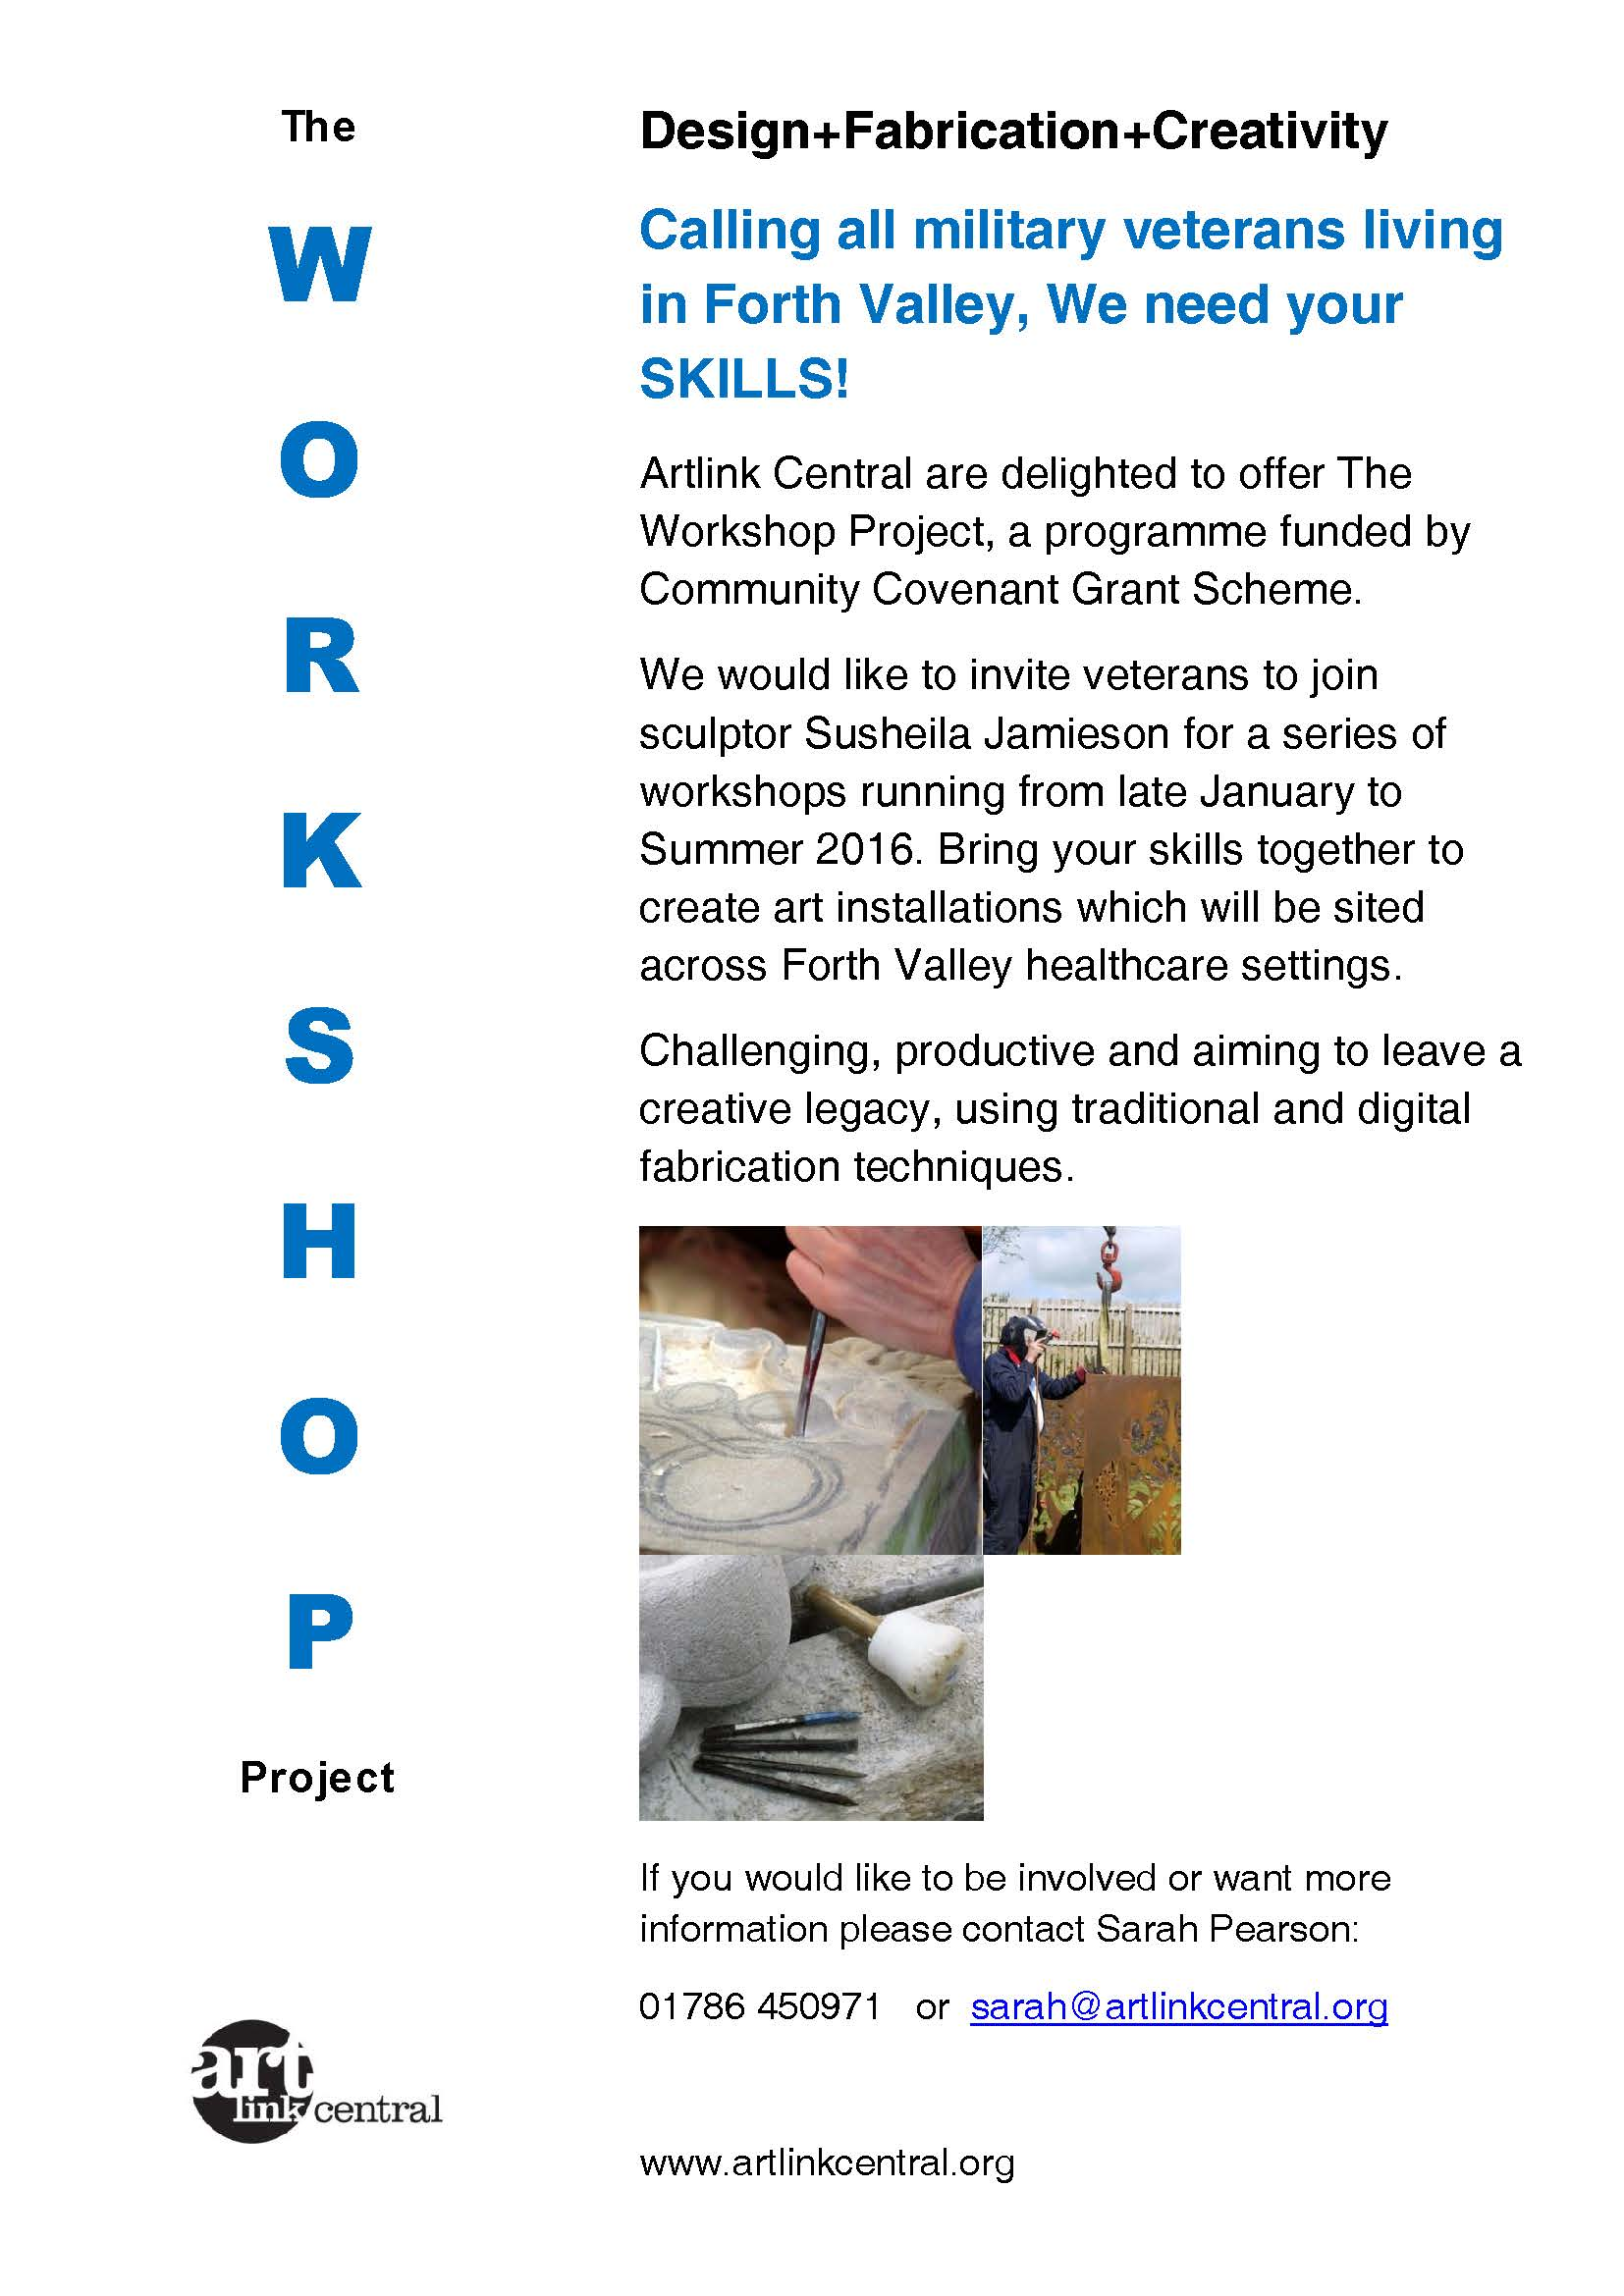 Poster for The Workshop Project